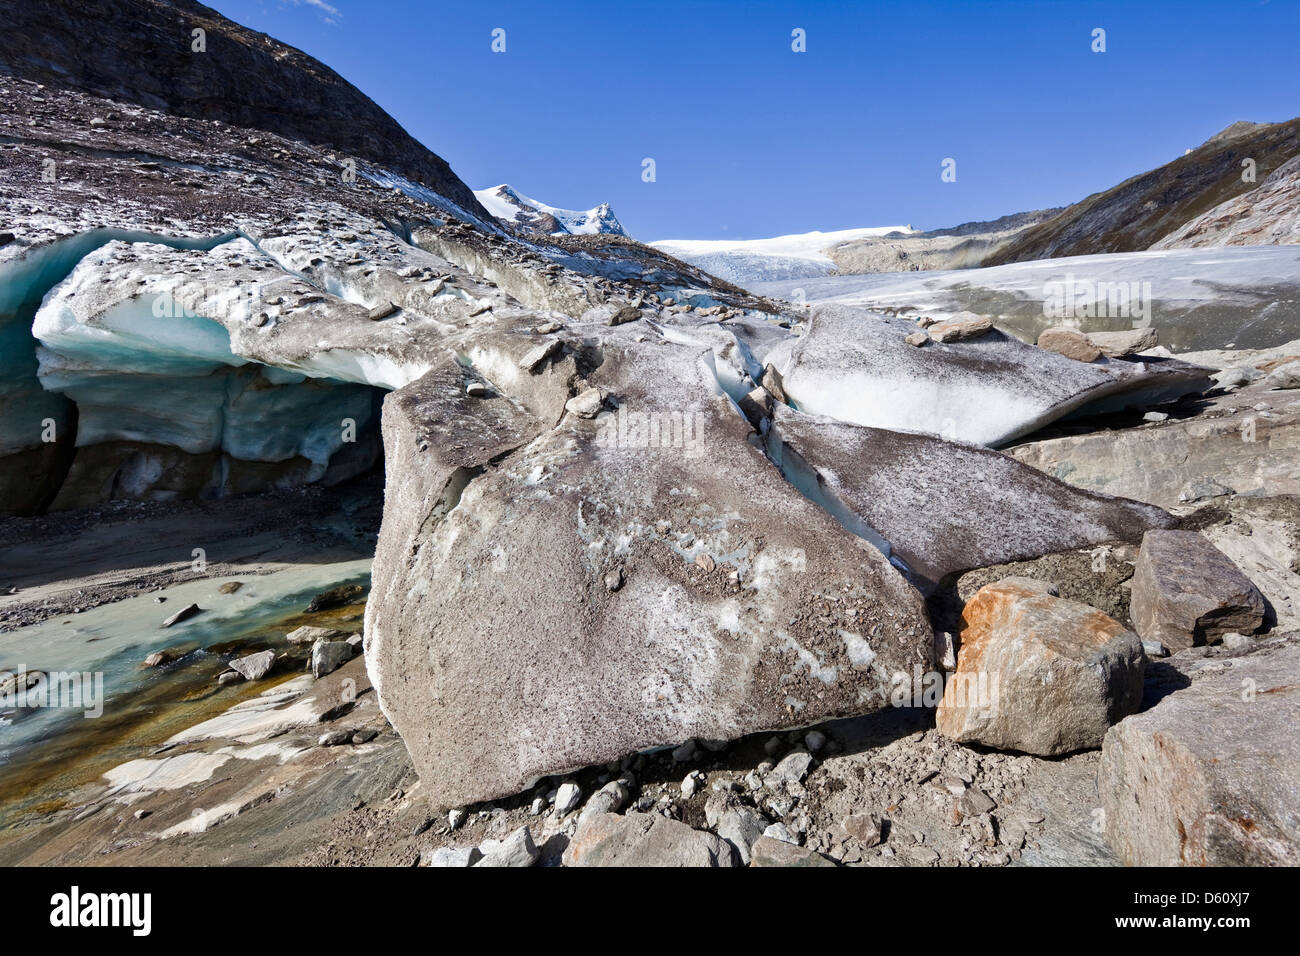 Austria, East Tyrol. Ice cave and glacier snout of Schlatenkees, source of Schlatenbach creek. Ice cave with two - Stock Image